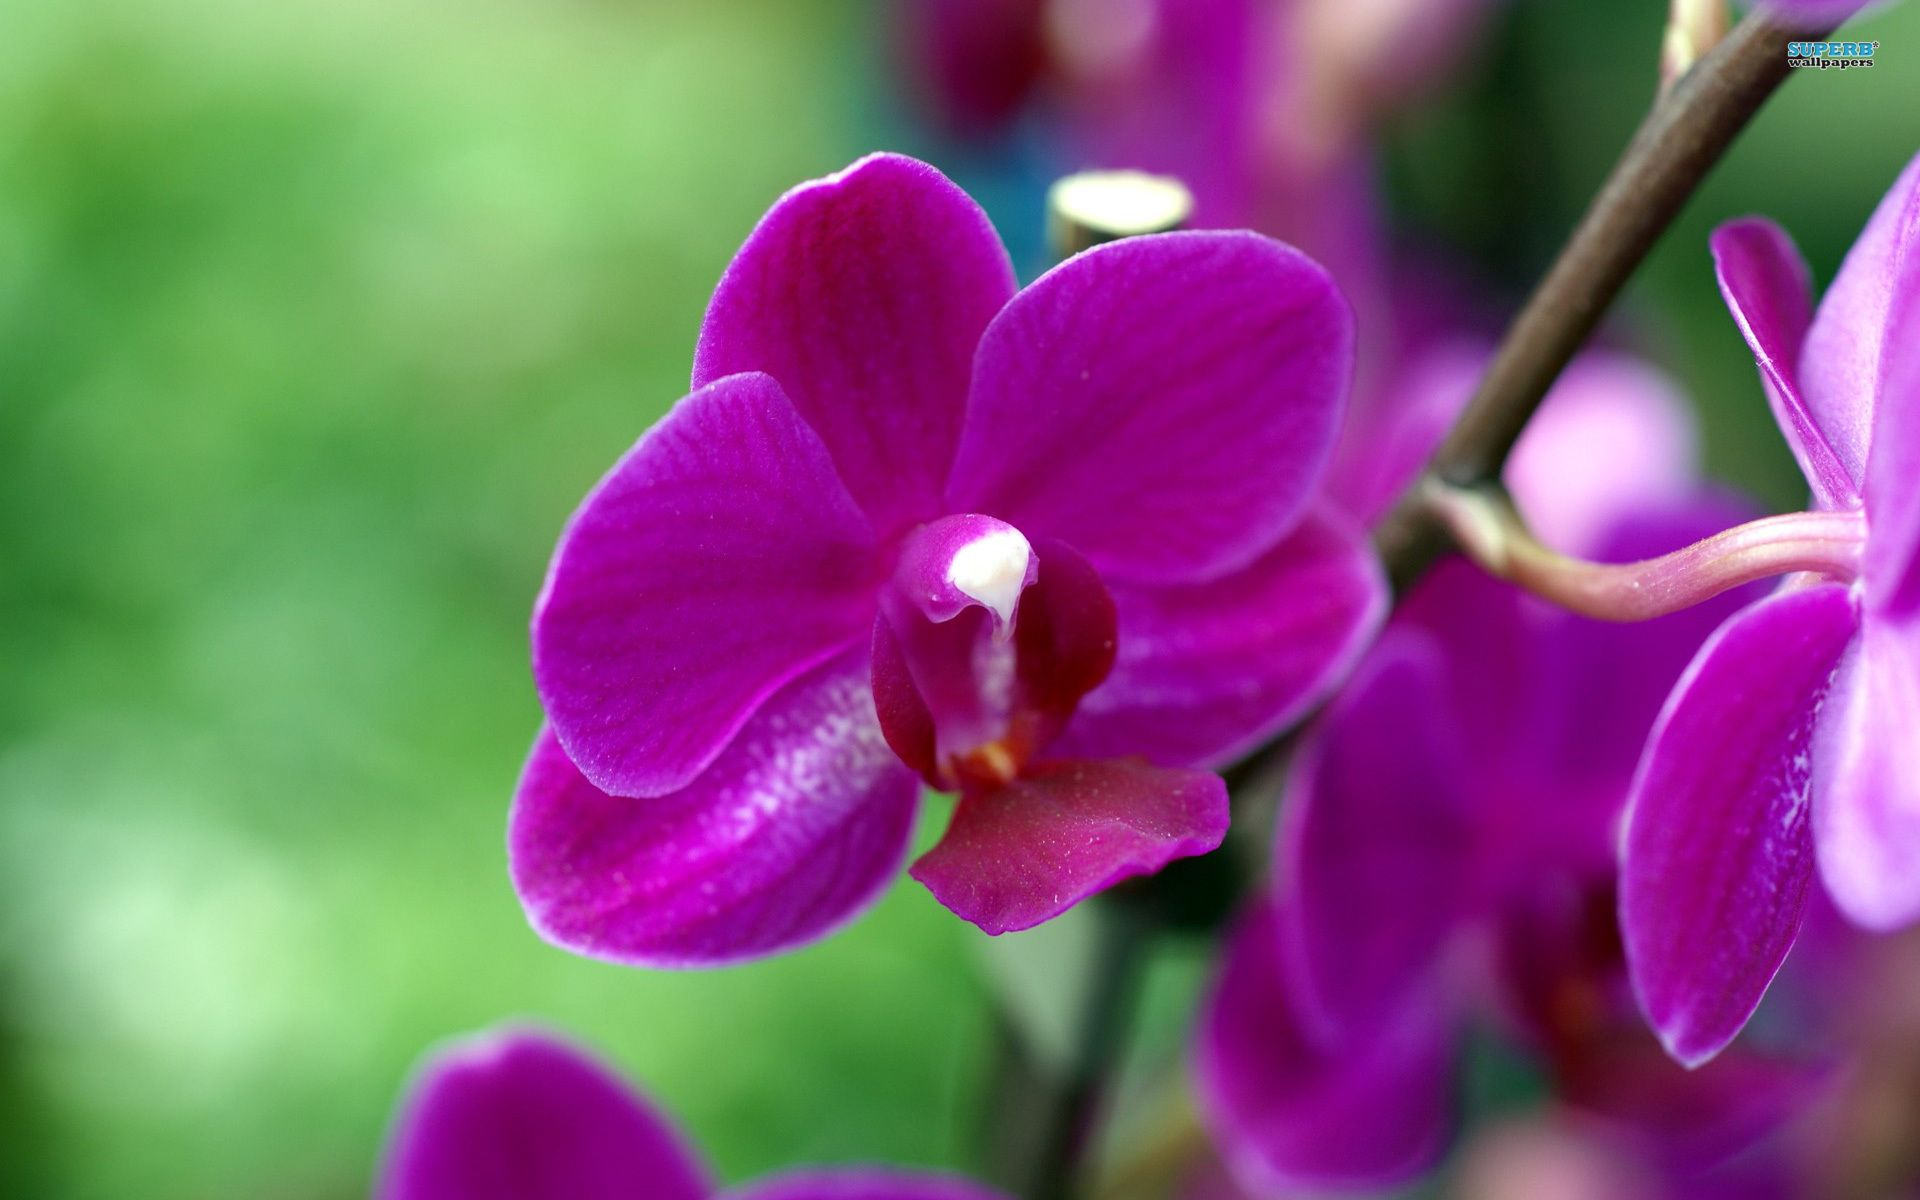 Images of purple orchid wallpaper flower wallpapers 4228 wallpaper images of purple orchid wallpaper flower wallpapers 4228 wallpaper biocorpaavc